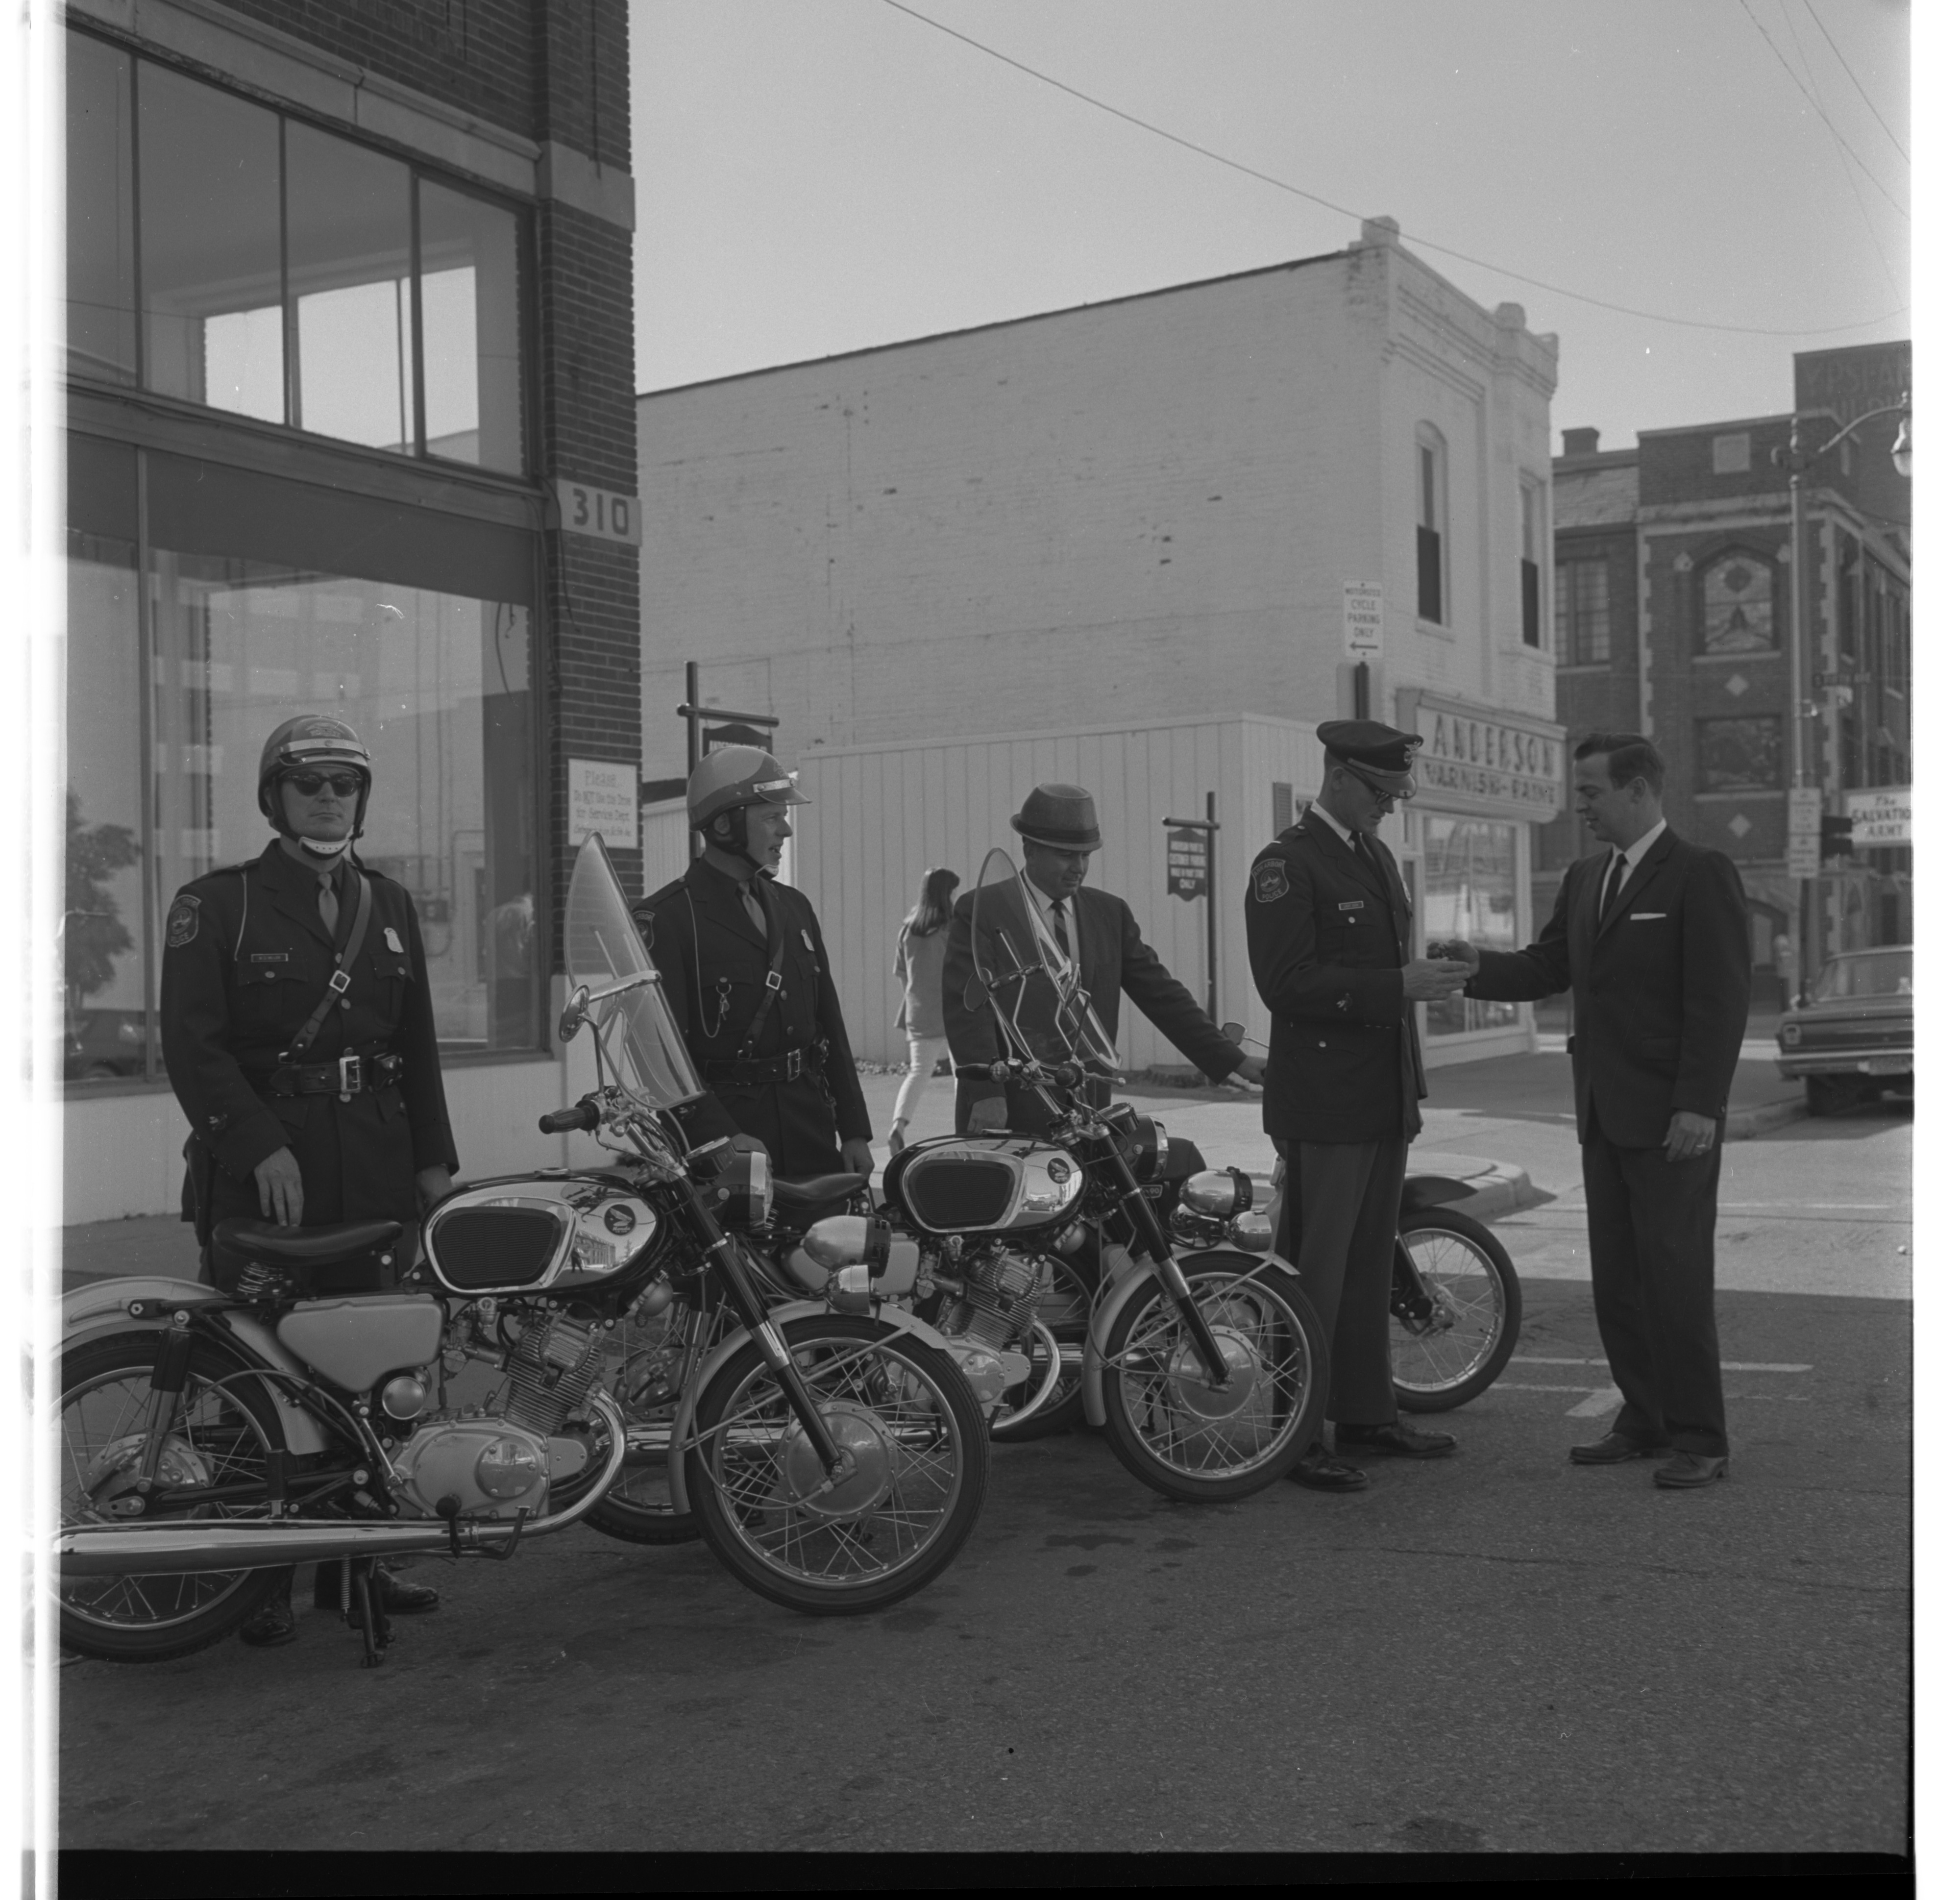 Ann Arbor Police Accept Keys To New Motorcycles Purchased From Downtown  Honda Co., November 1966